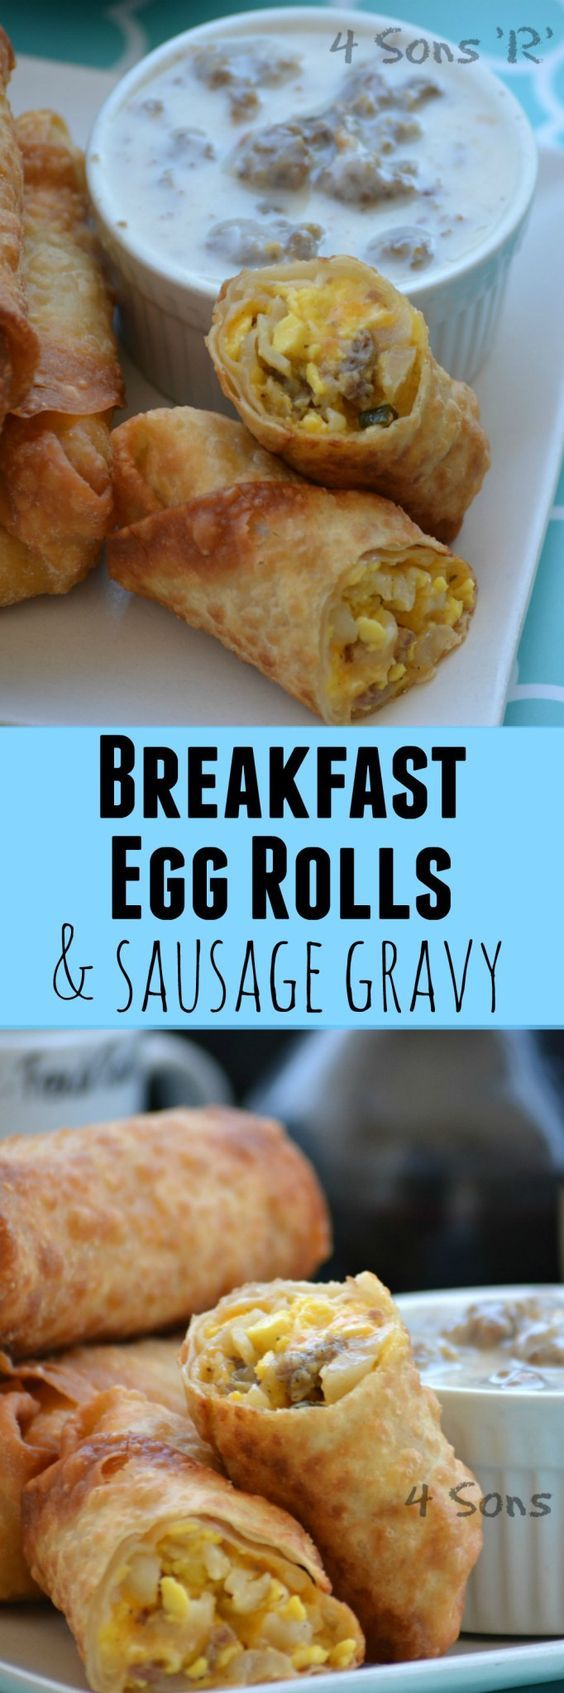 breakfast egg rolls with sausage and gravy ... #Breakfast #Brunch #Entree #Recipe #Food